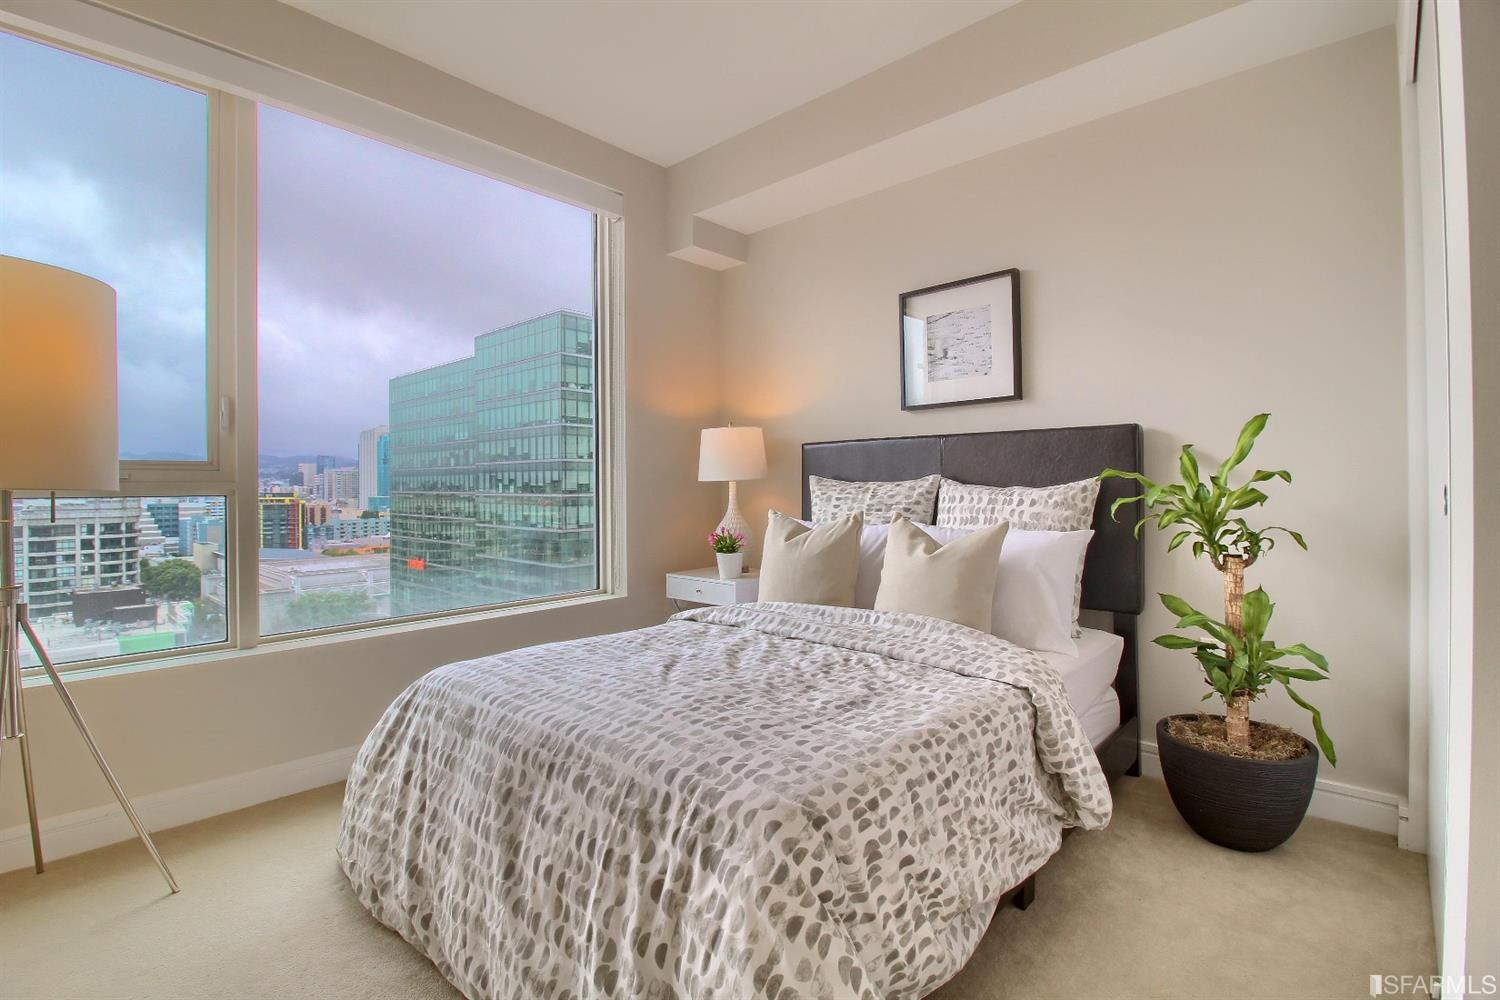 Additional photo for property listing at 631 Folsom Street Unit 15b  SAN FRANCISCO, CALIFORNIA 94107